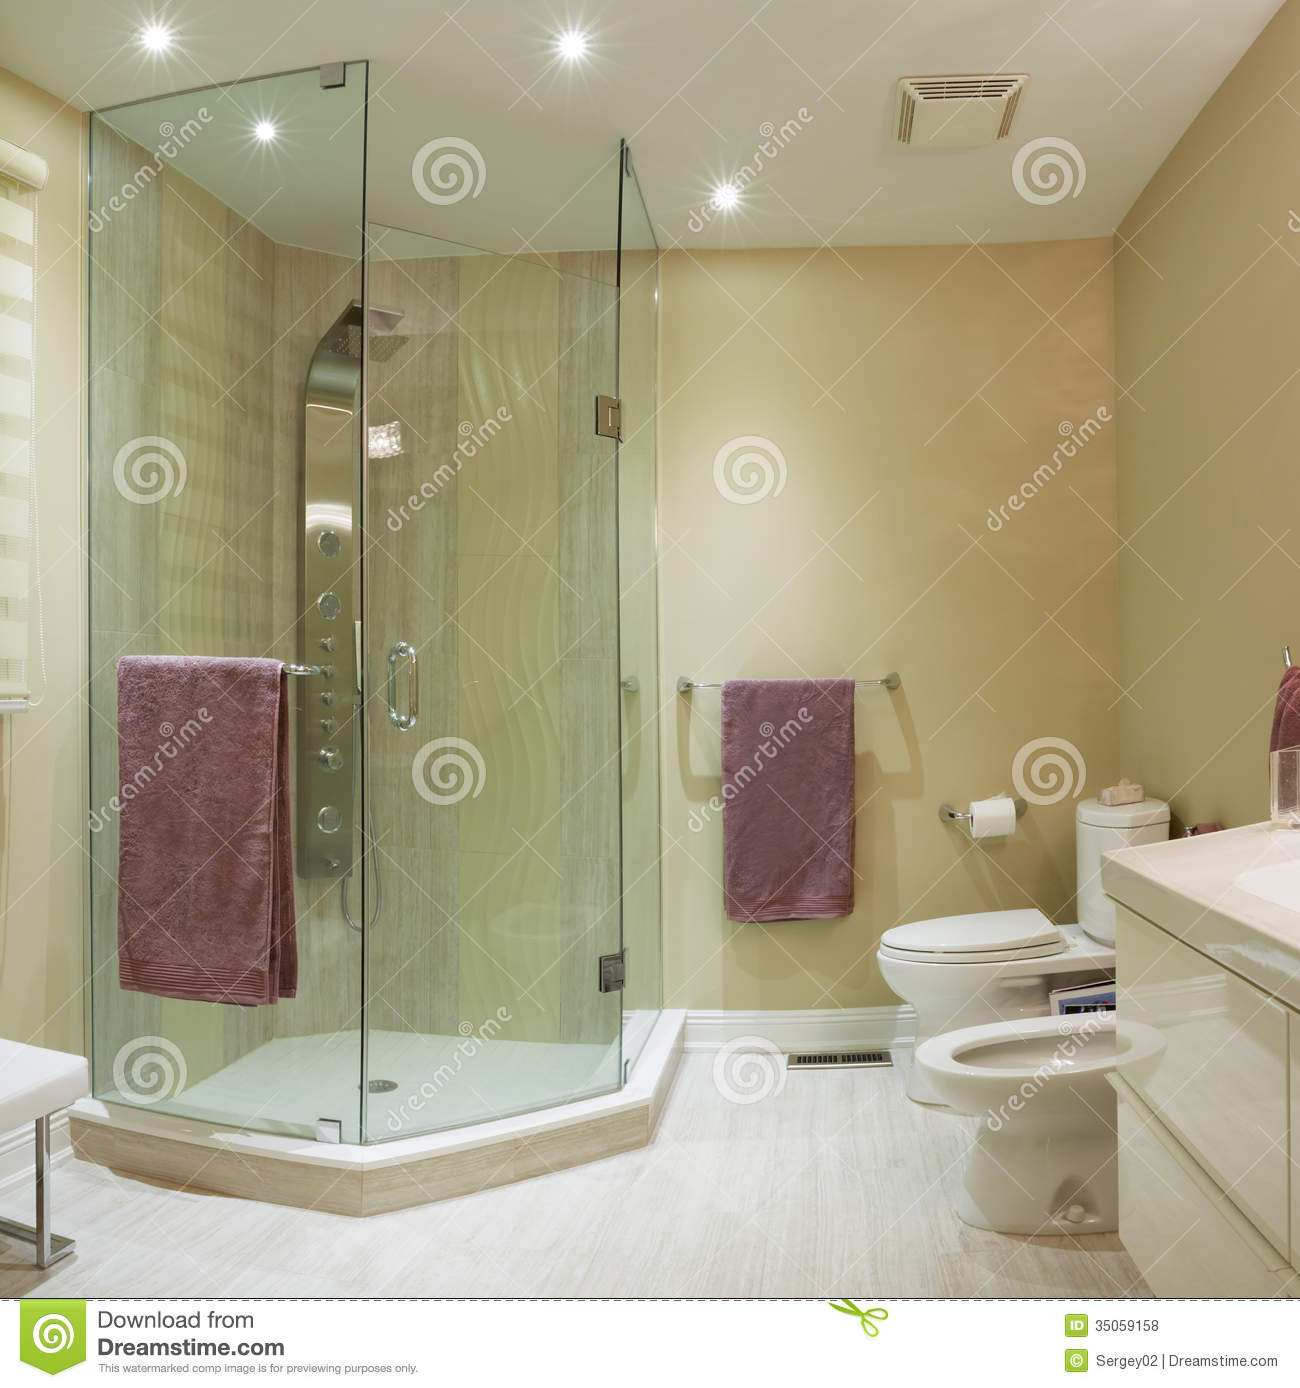 Interior design royalty free stock photos image 35059158 for House bathroom photos